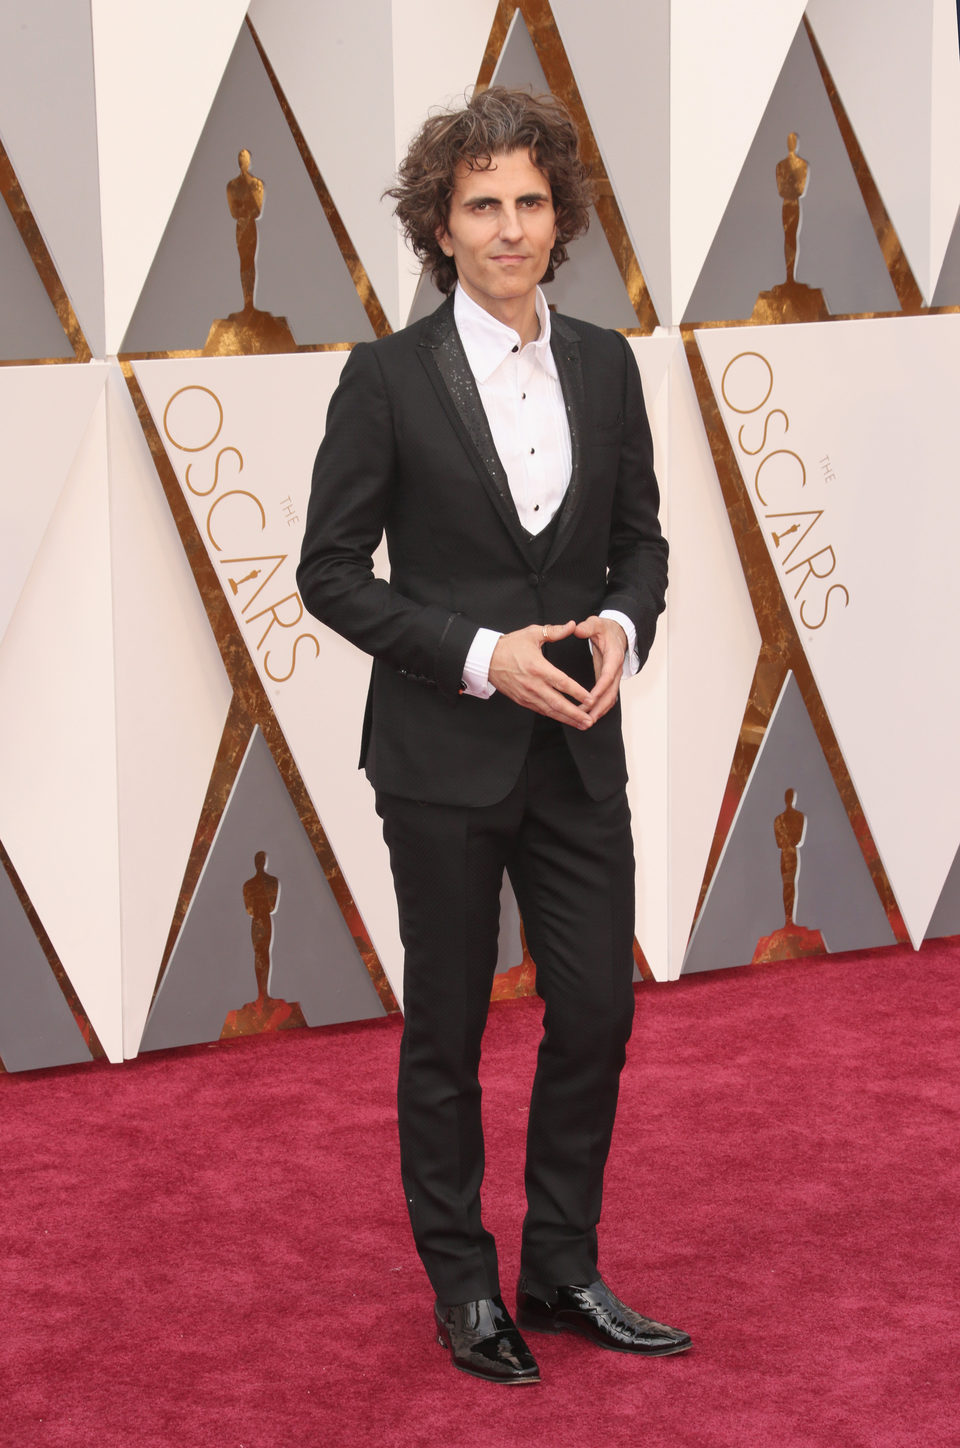 Stephan Moccio at the Oscars 2016 red carpet